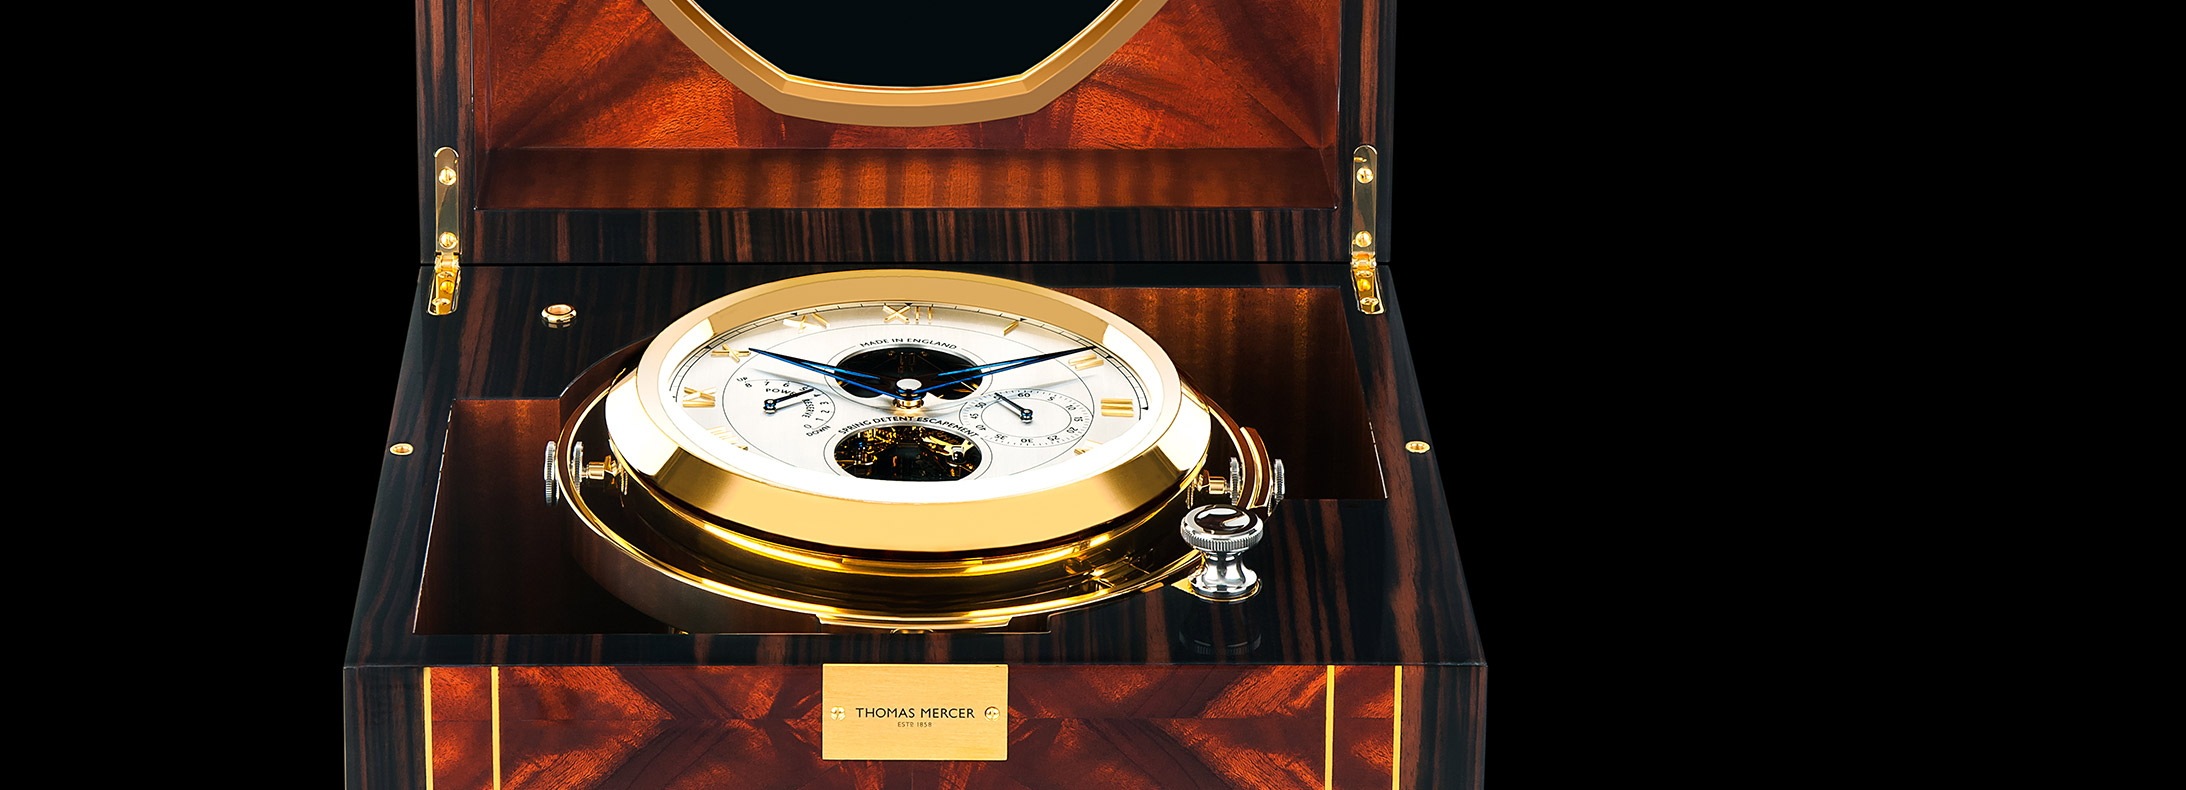 Similarly to the dial of a watch, the elements of the mechanism are on show